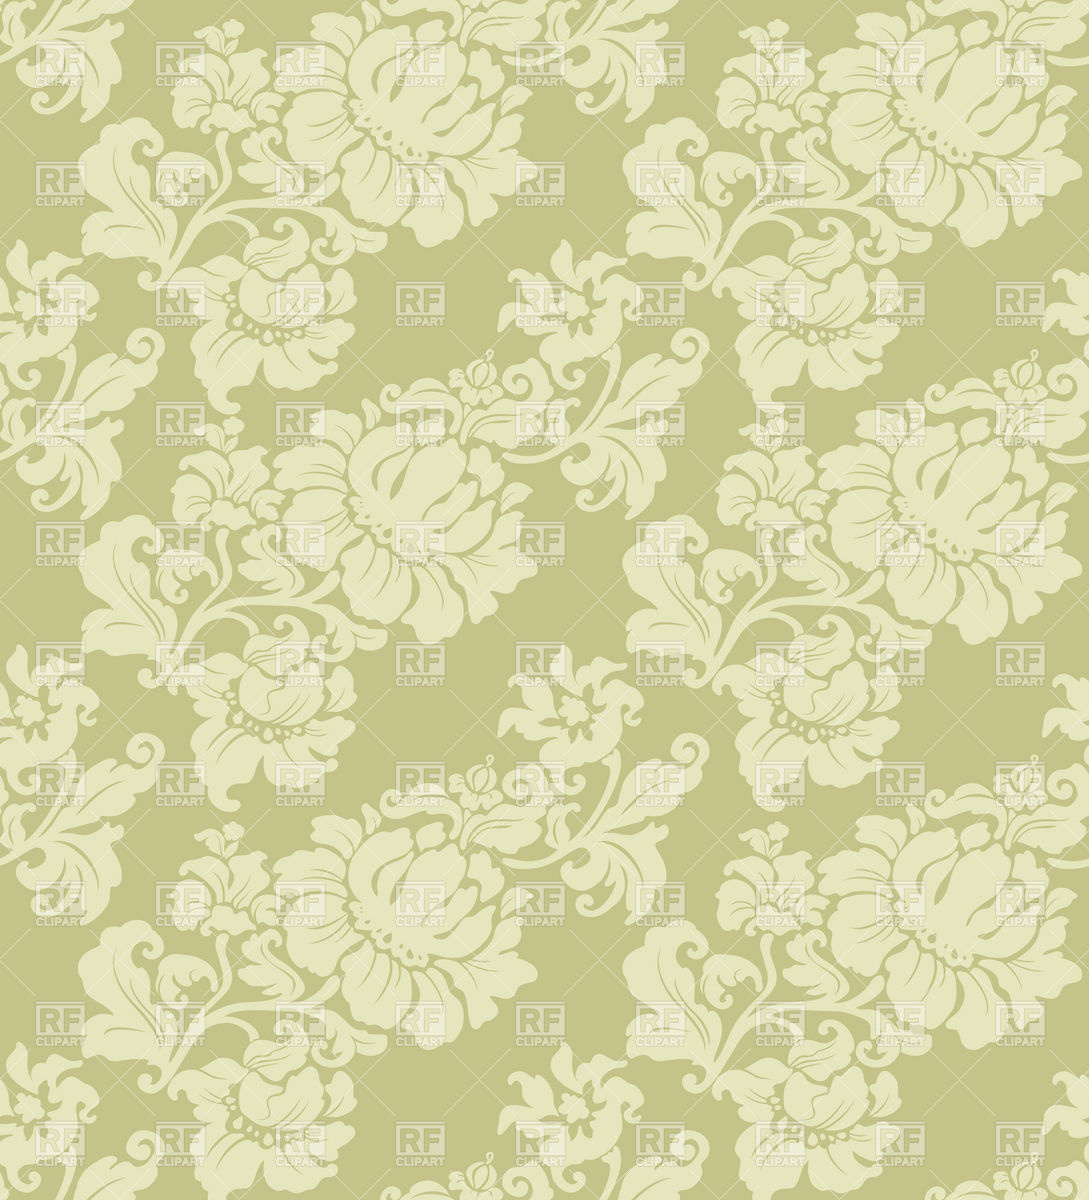 Free Download Seamless Floral Pattern Classic Wallpaper Vector